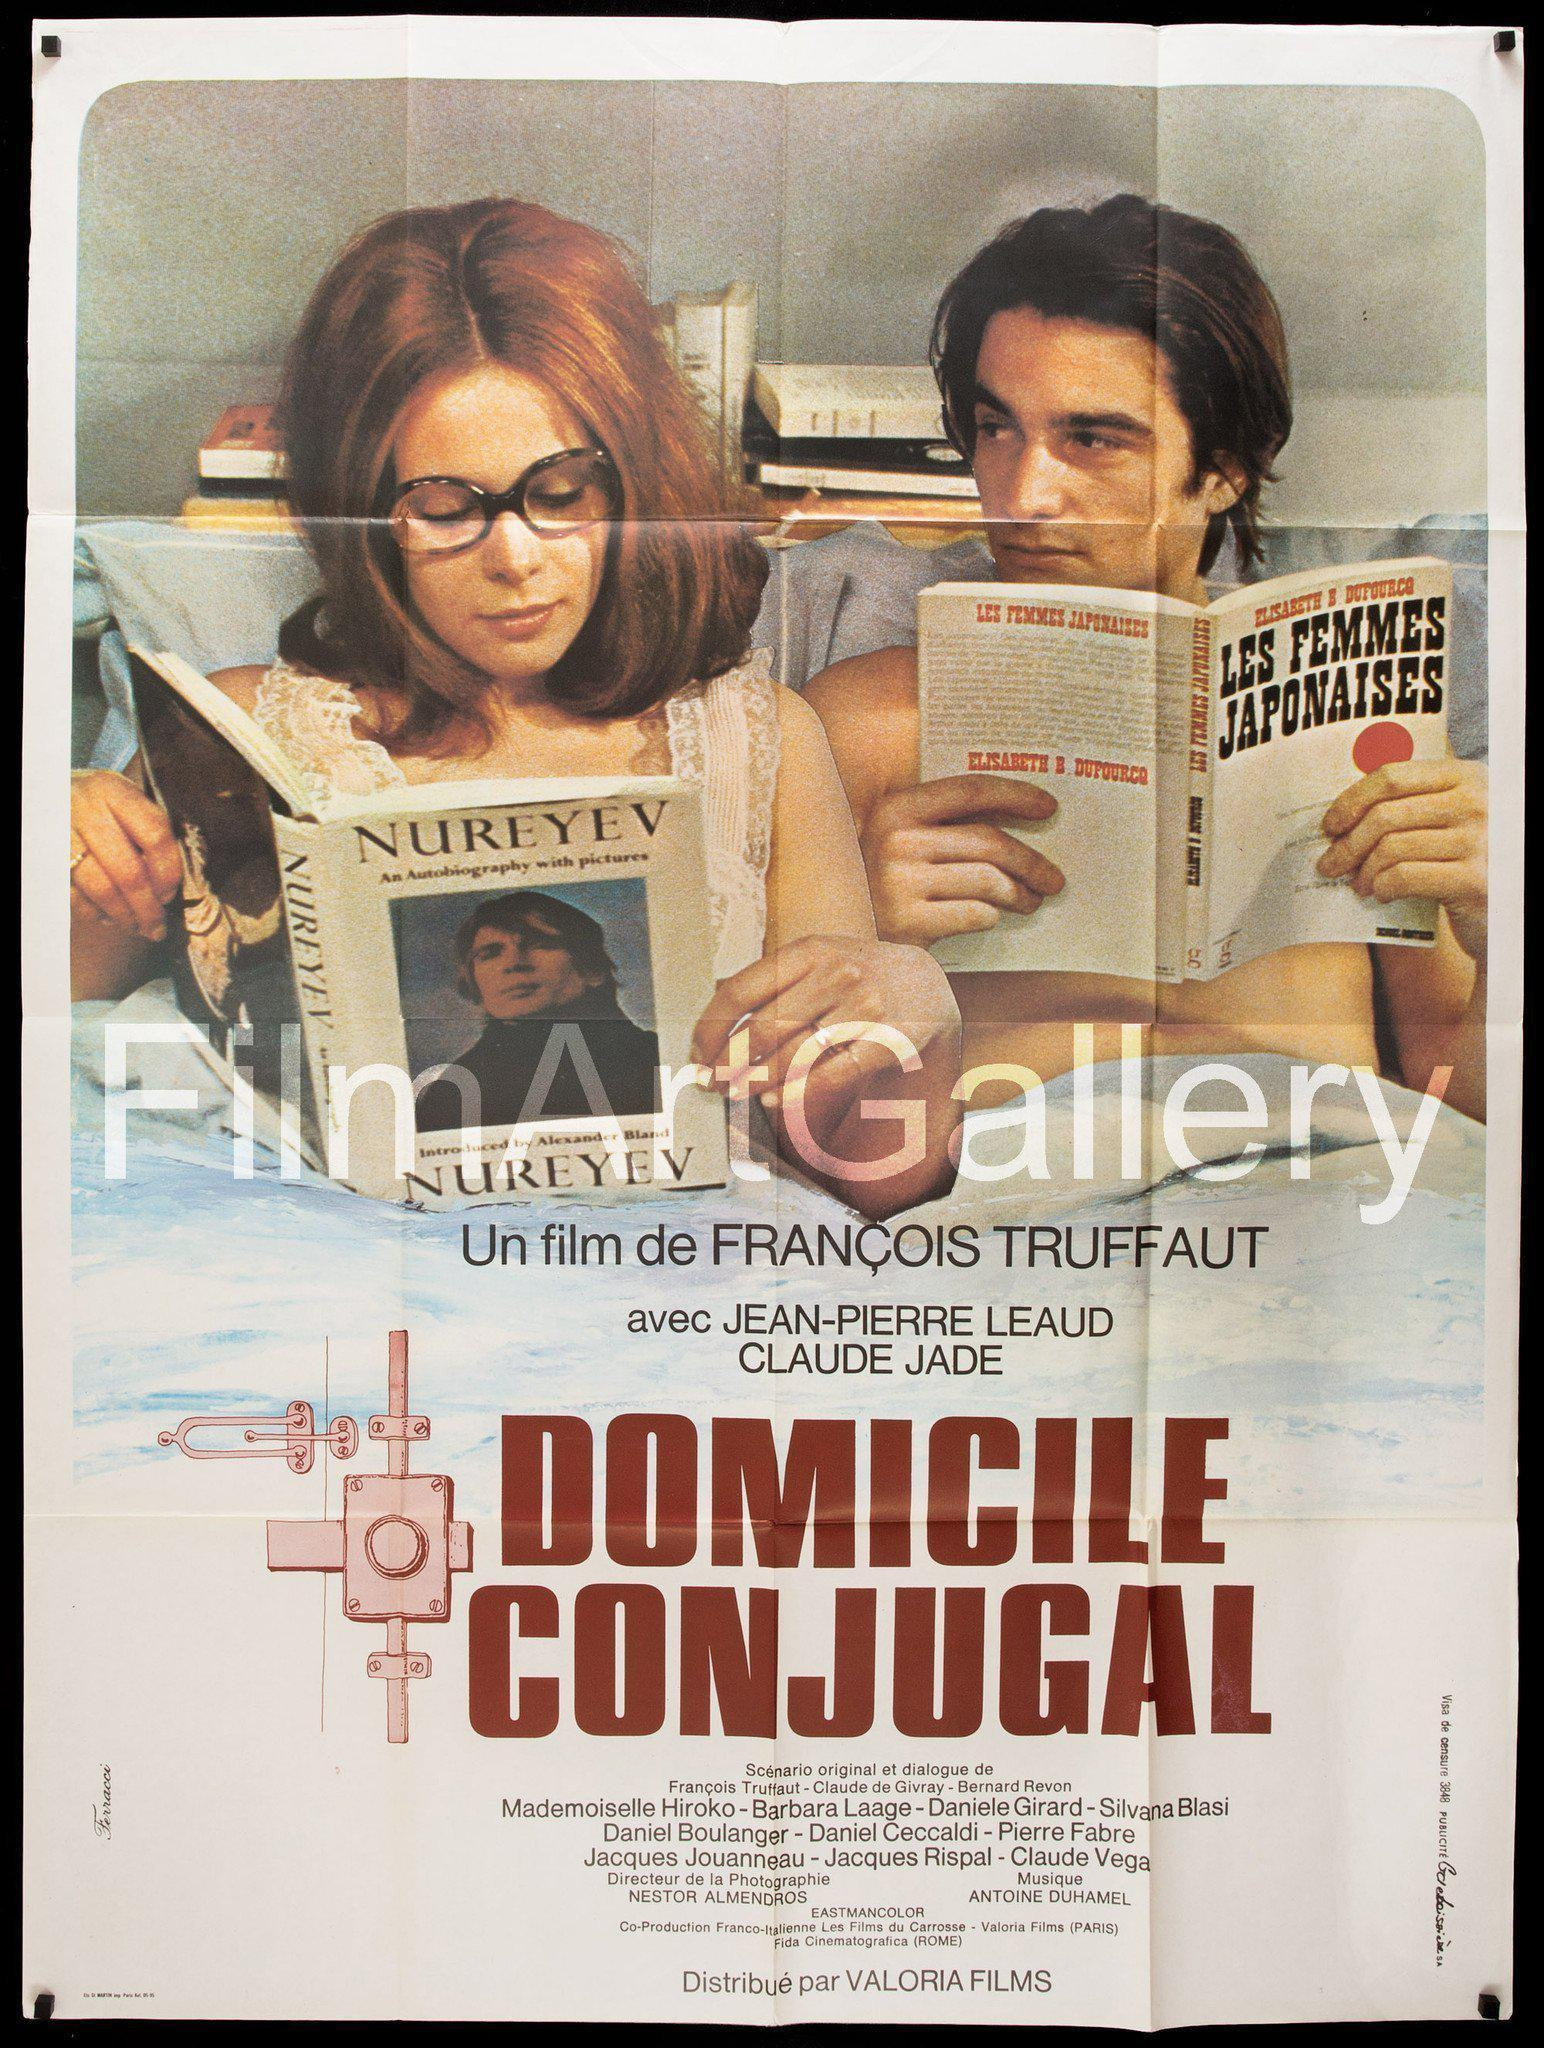 Domicile Conjugal (Bed and Board) French 1 Panel (47x63) Original Vintage Movie Poster